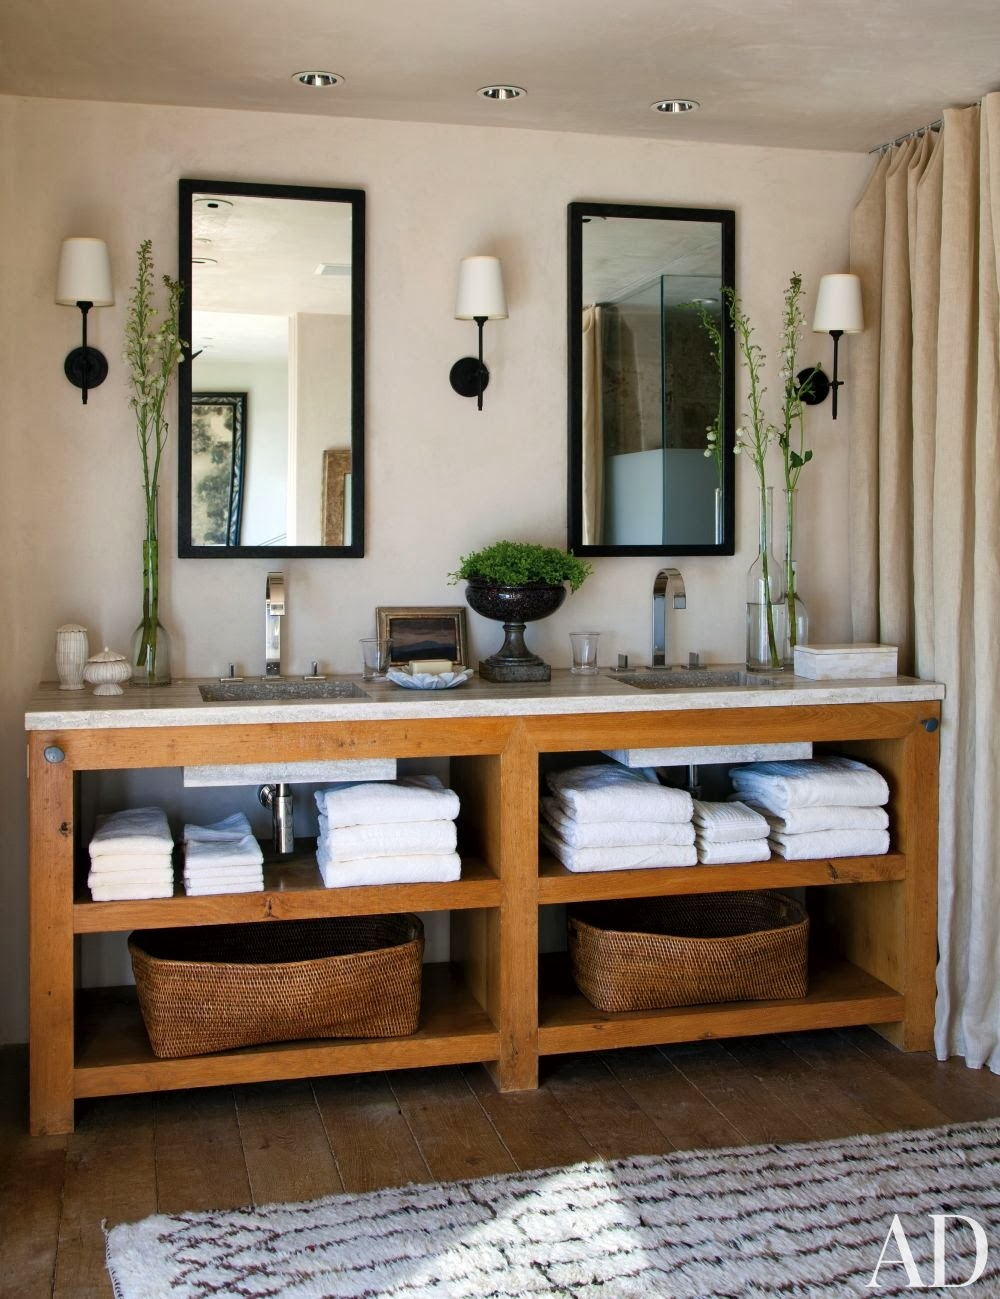 Refresheddesigns seven stunning modern rustic bathrooms for Idee deco salle de bain rustique